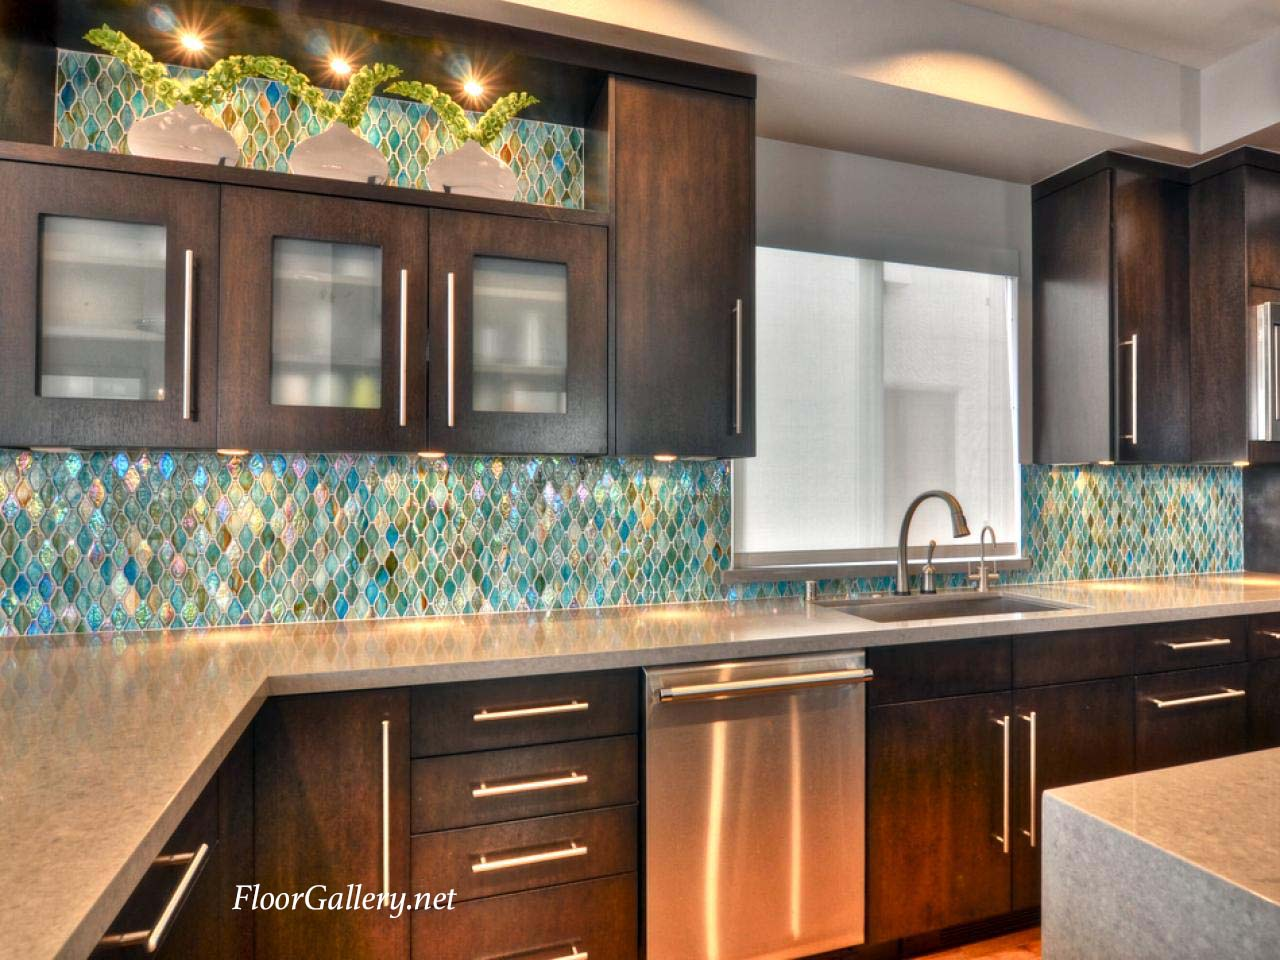 Backsplash (Lake Forest)